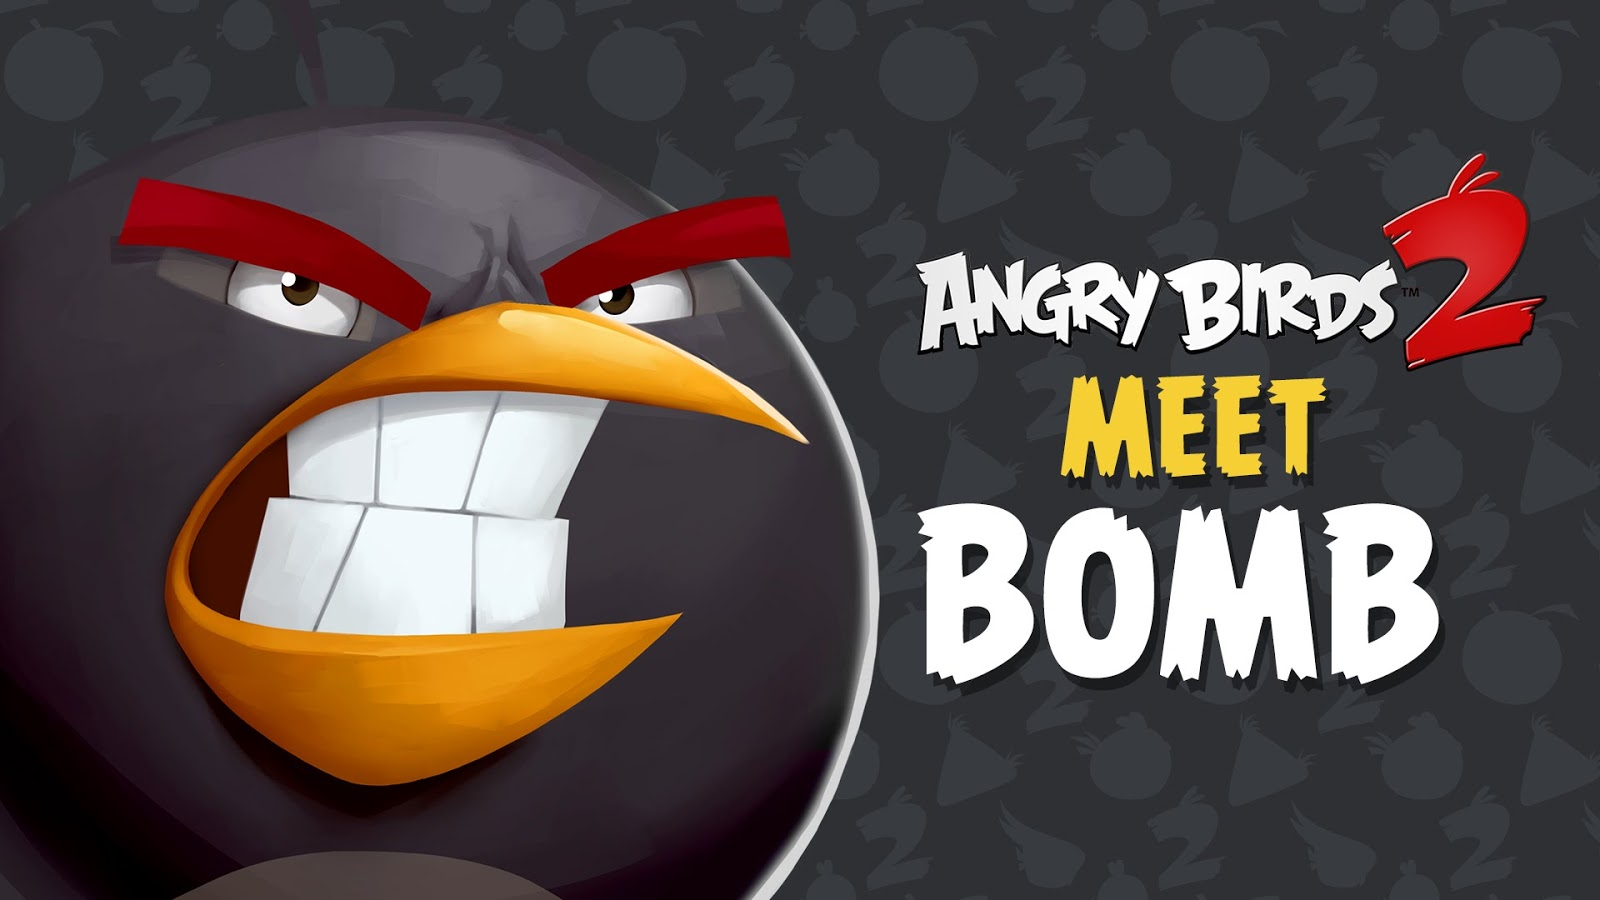 free download angry birds 2 game apps for laptop pc desktop windows 7 8 10 mac os x. Black Bedroom Furniture Sets. Home Design Ideas